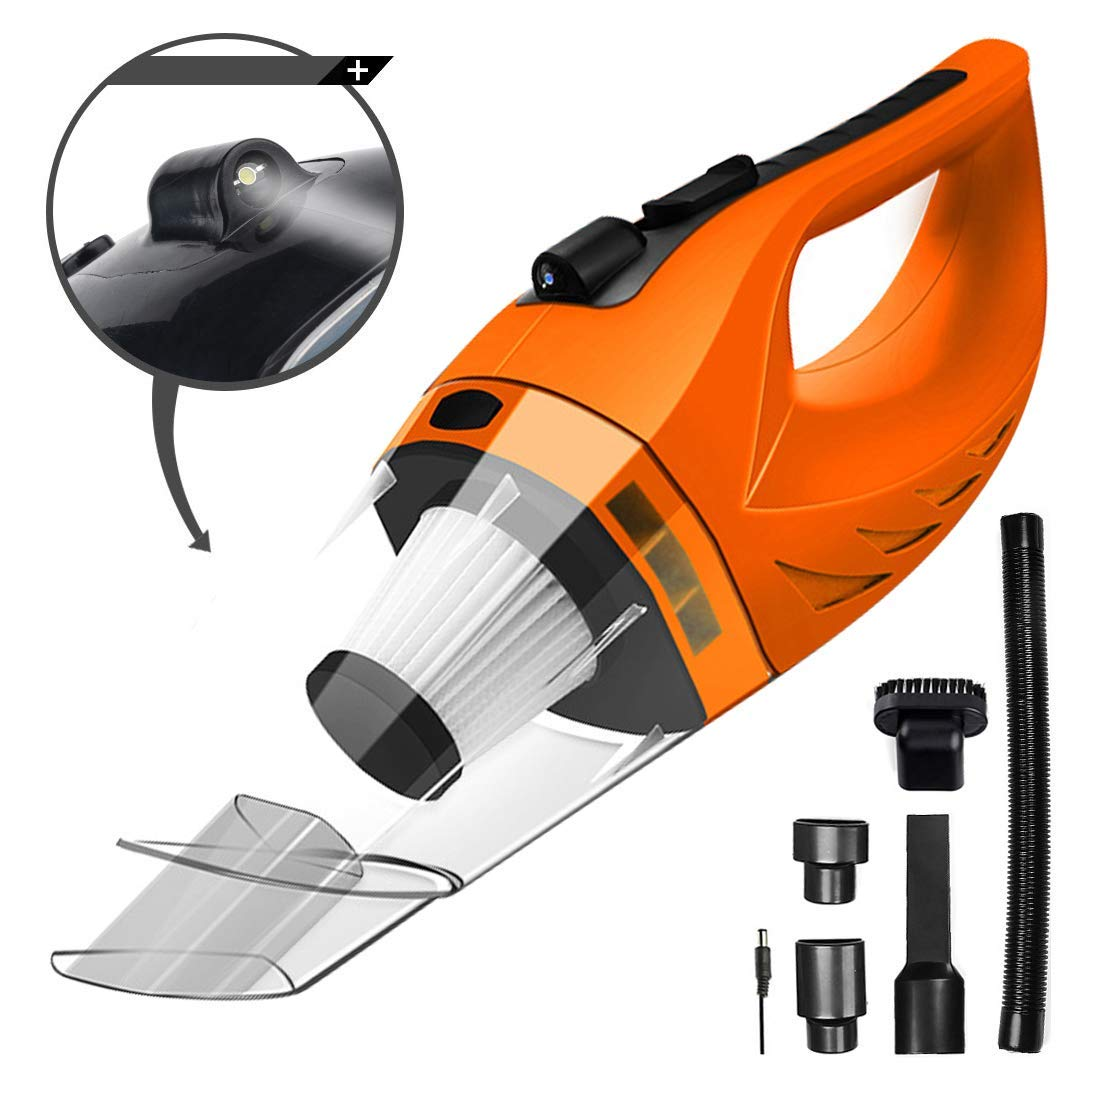 Cordless Car Vacuum Cleaner DC 12V 120W Wet Dry Auto Dustbuster Portable Handheld Auto Vacuum Cleaner for Car 4000Pa Suction Car Hoover with HEAP Filter&5Meters LED Light Car & Home Cleaner (Orange)